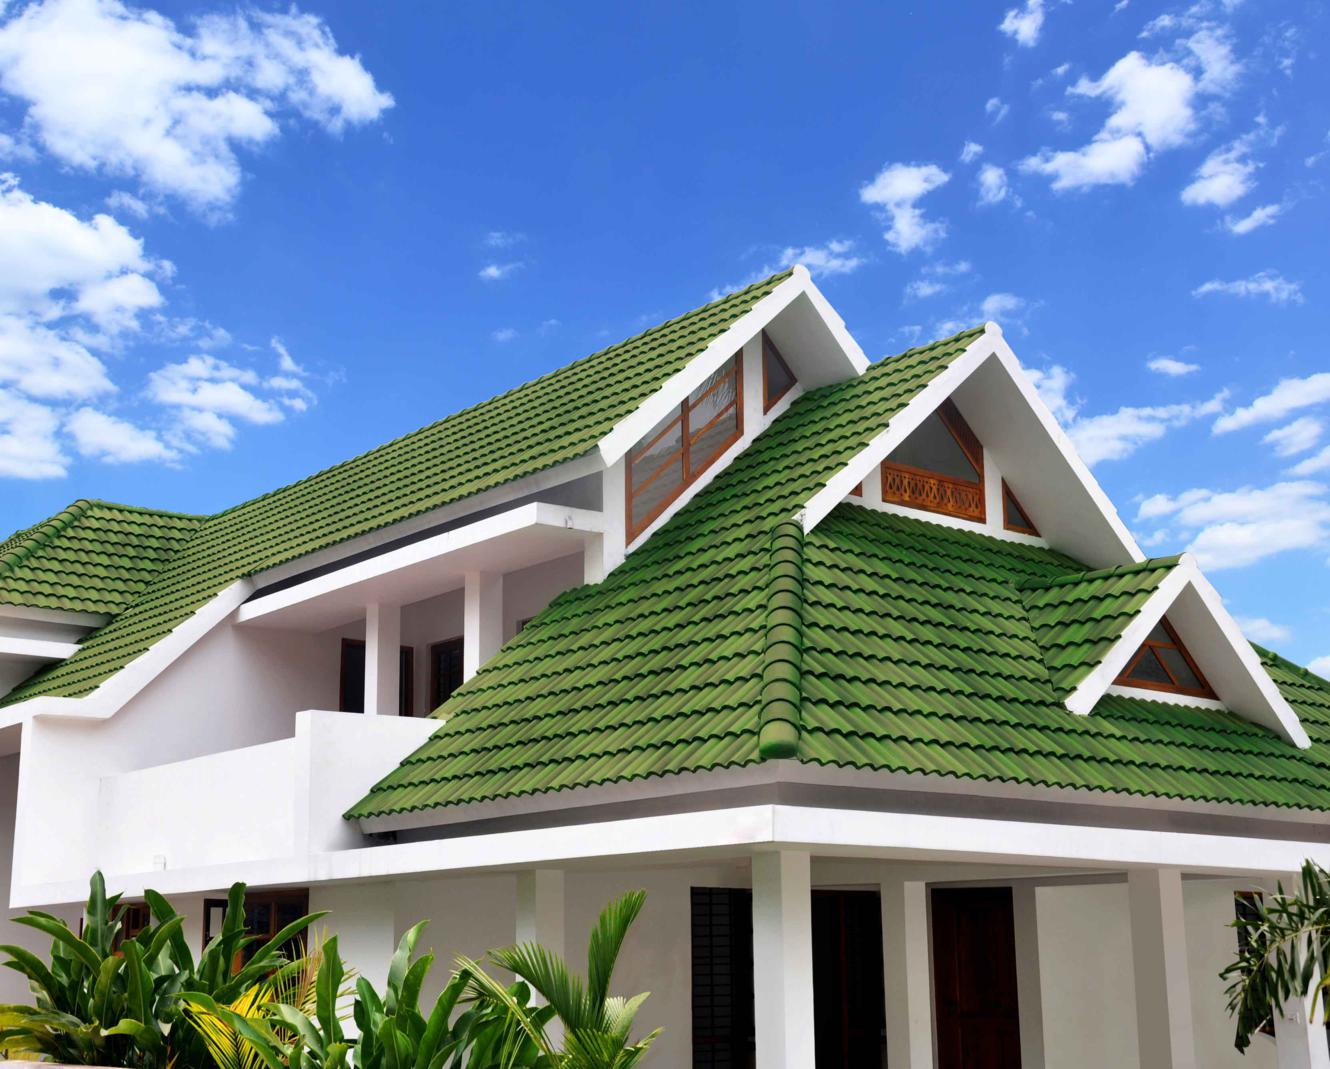 6 Pak Clay Green Glazed Khaprail Roof Tiles Prices in Pakistan Images